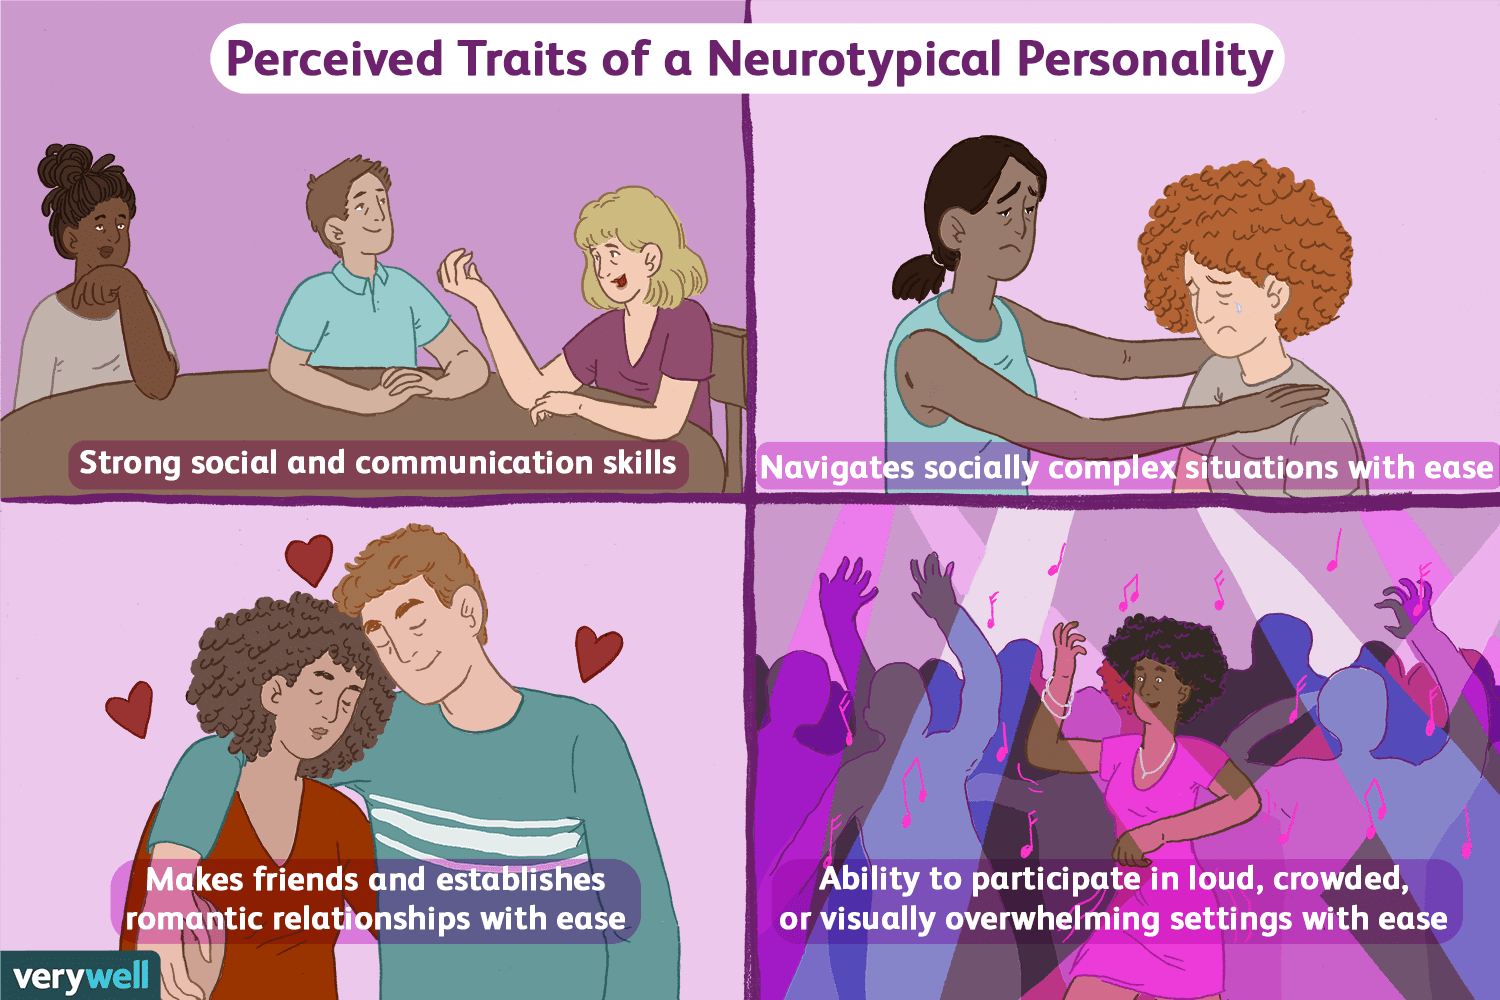 What Does It Mean to Be Neurotypical?